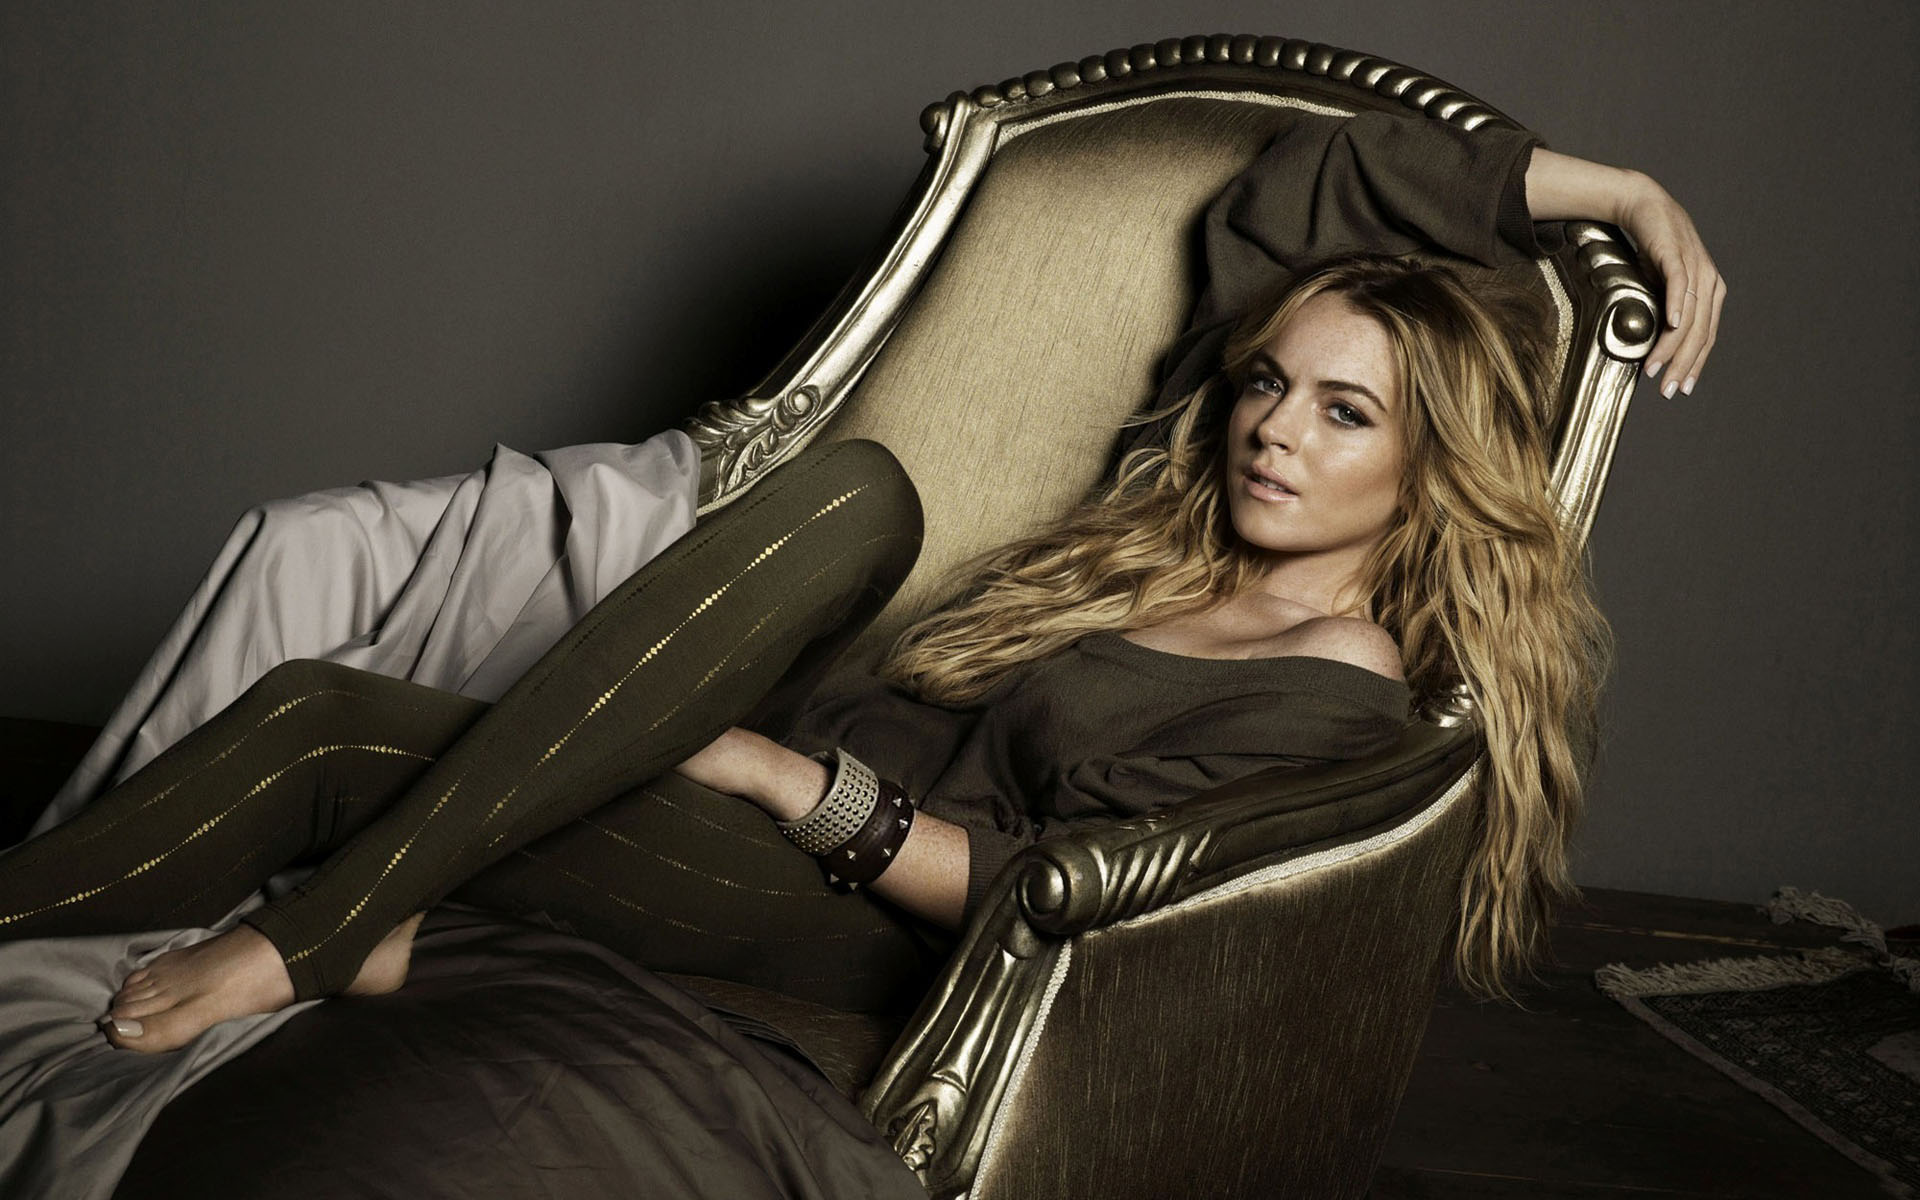 Lindsay Lohan desktop wallpaper